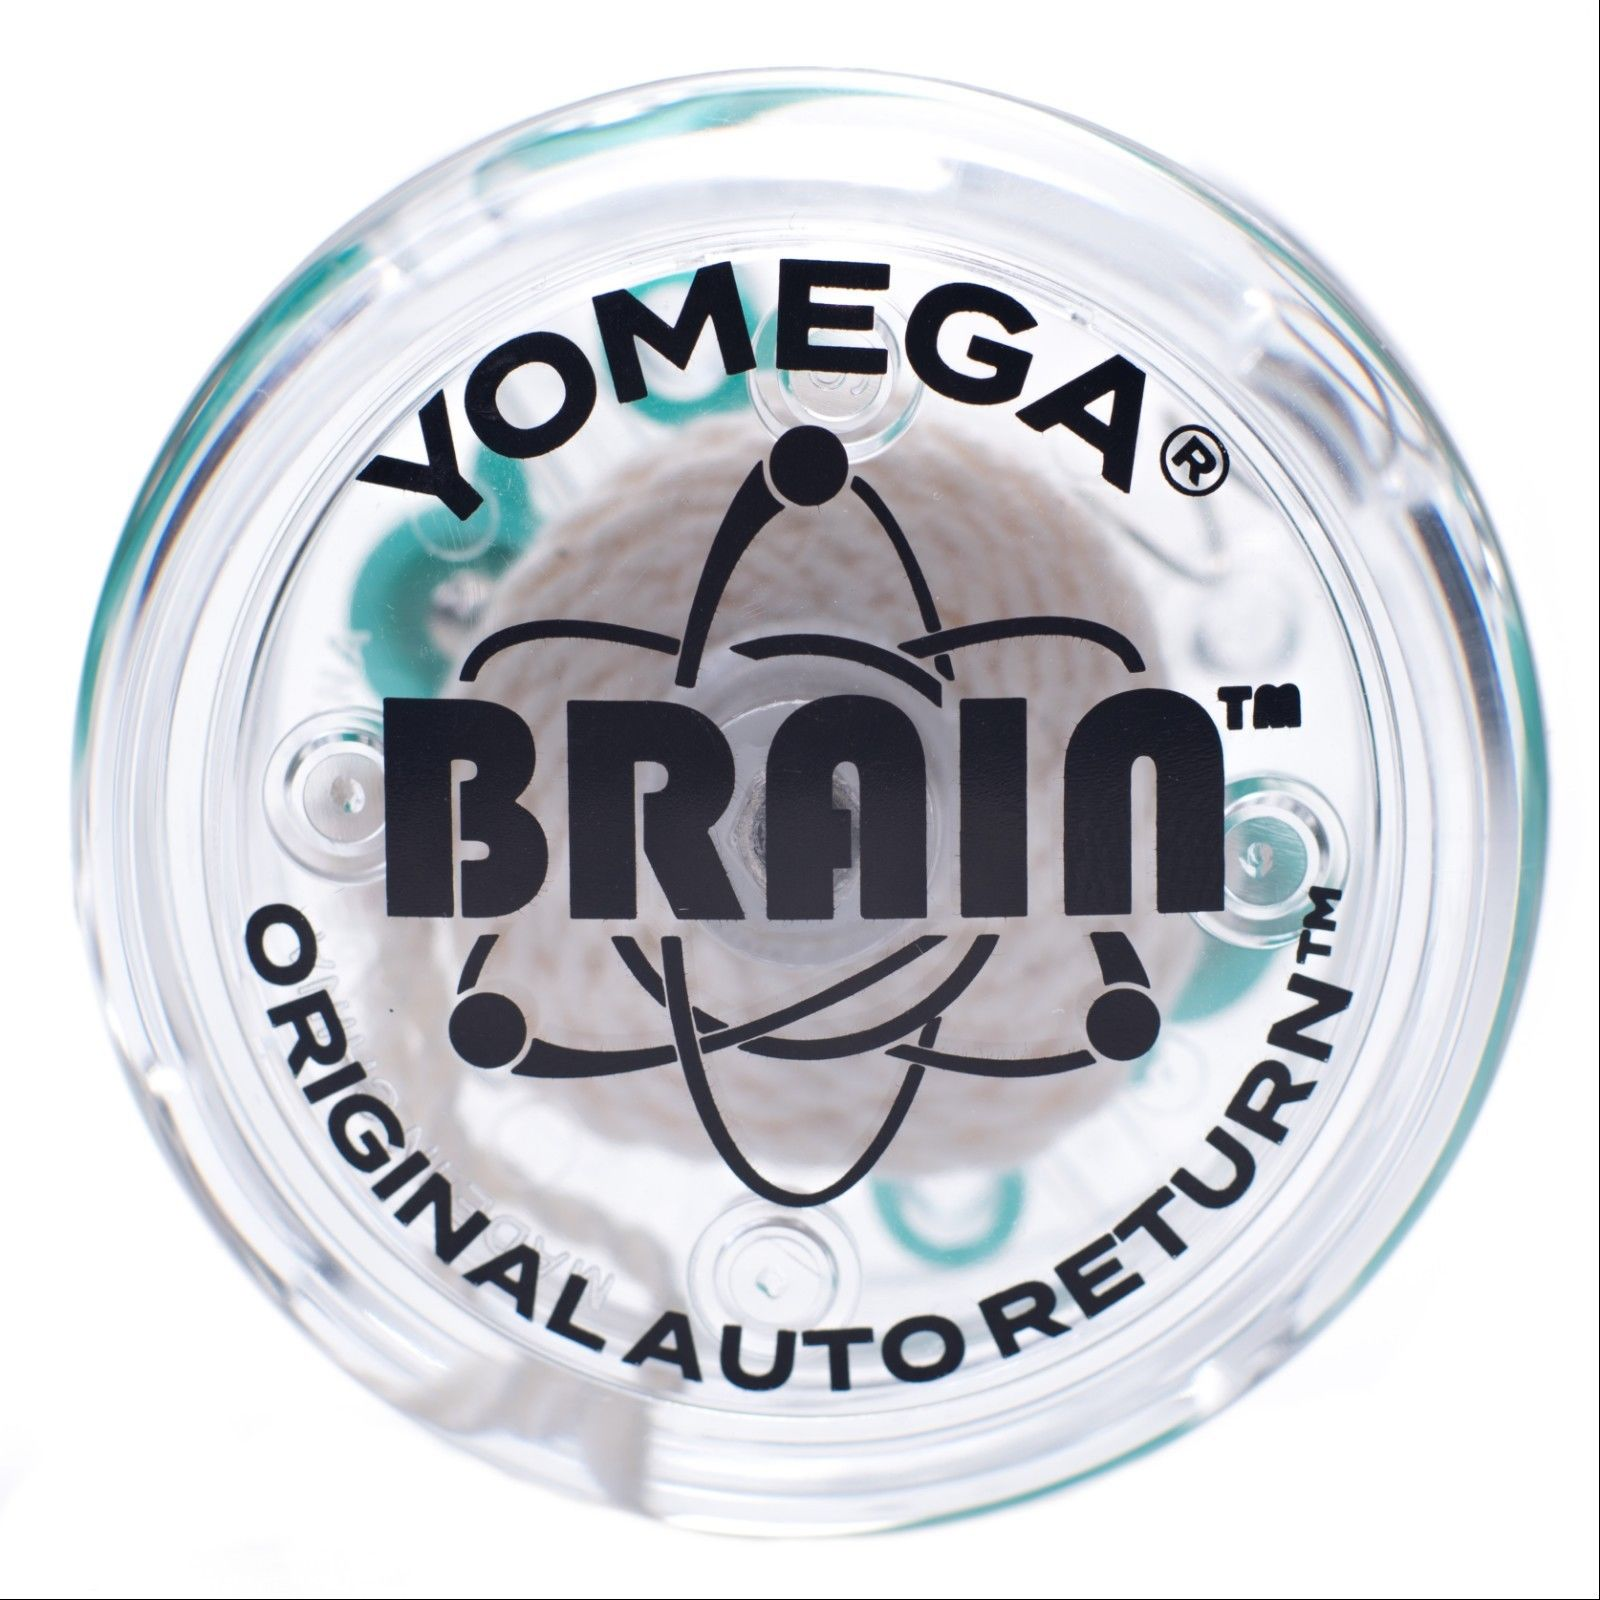 Yomega Brain Clear Yo Yo W Auto Return Clutch Technology